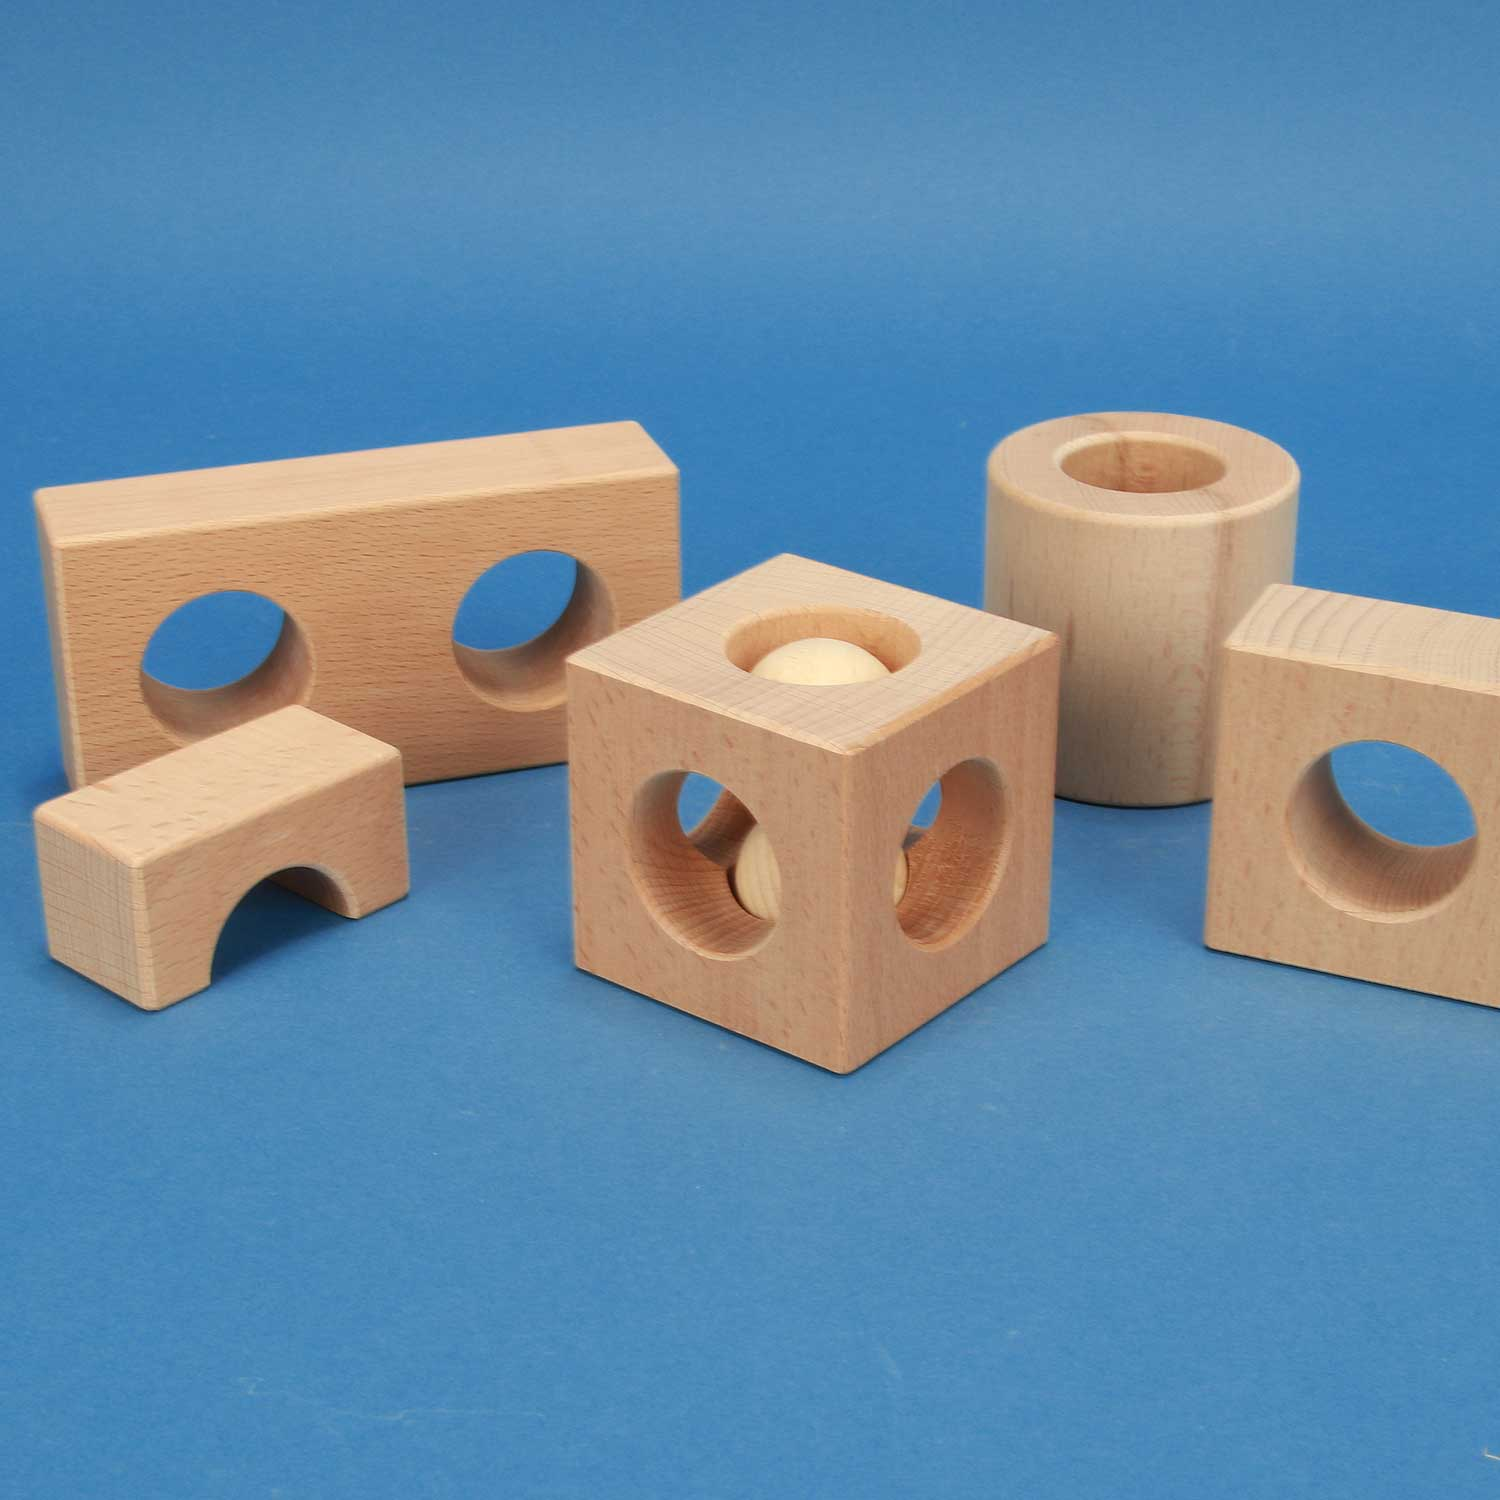 Learning with drilled wooden blocks